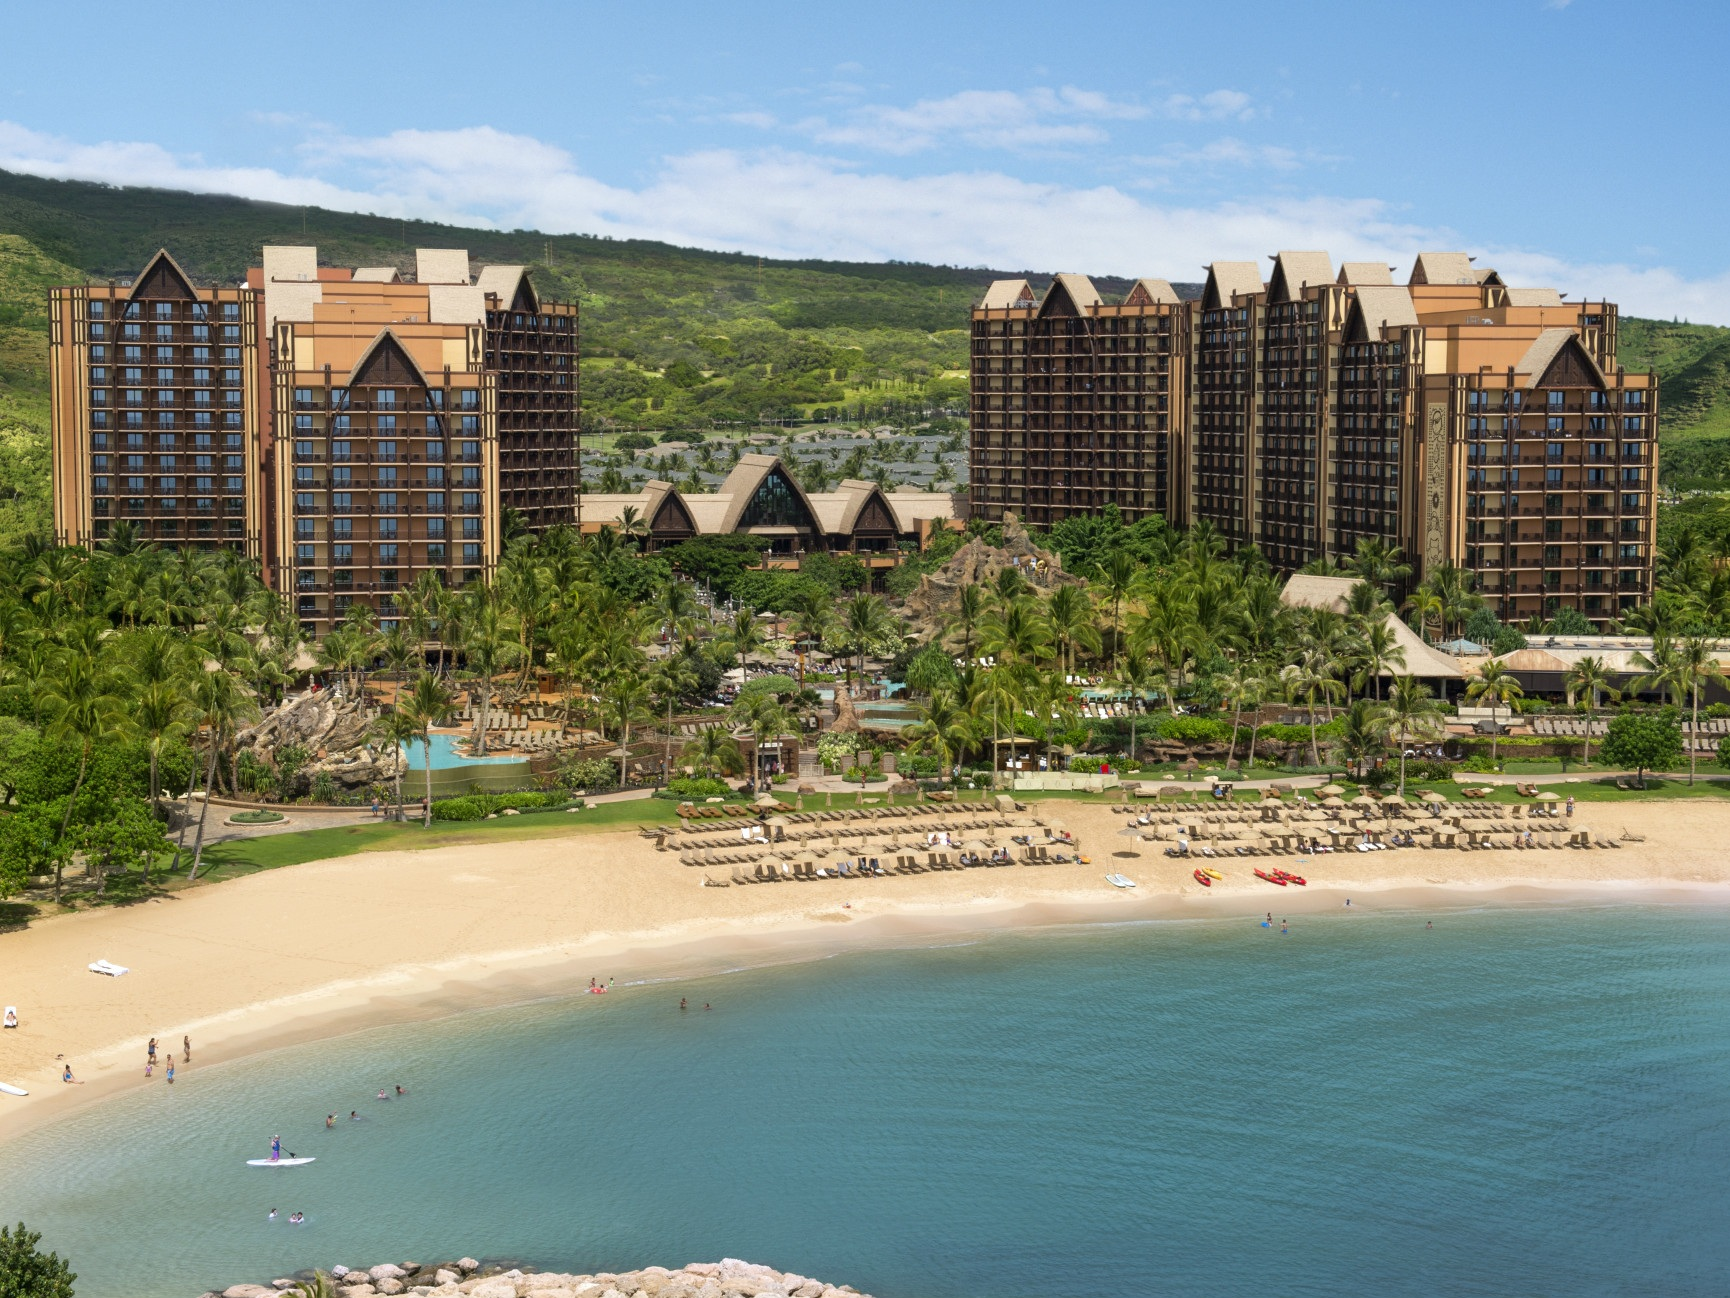 Disney's AULANI Resort (Hawaii) - Sitting along the beaches of the island of Oahu, Aulani is Disney's third stand-alone hotel and most relaxing vacation destination.